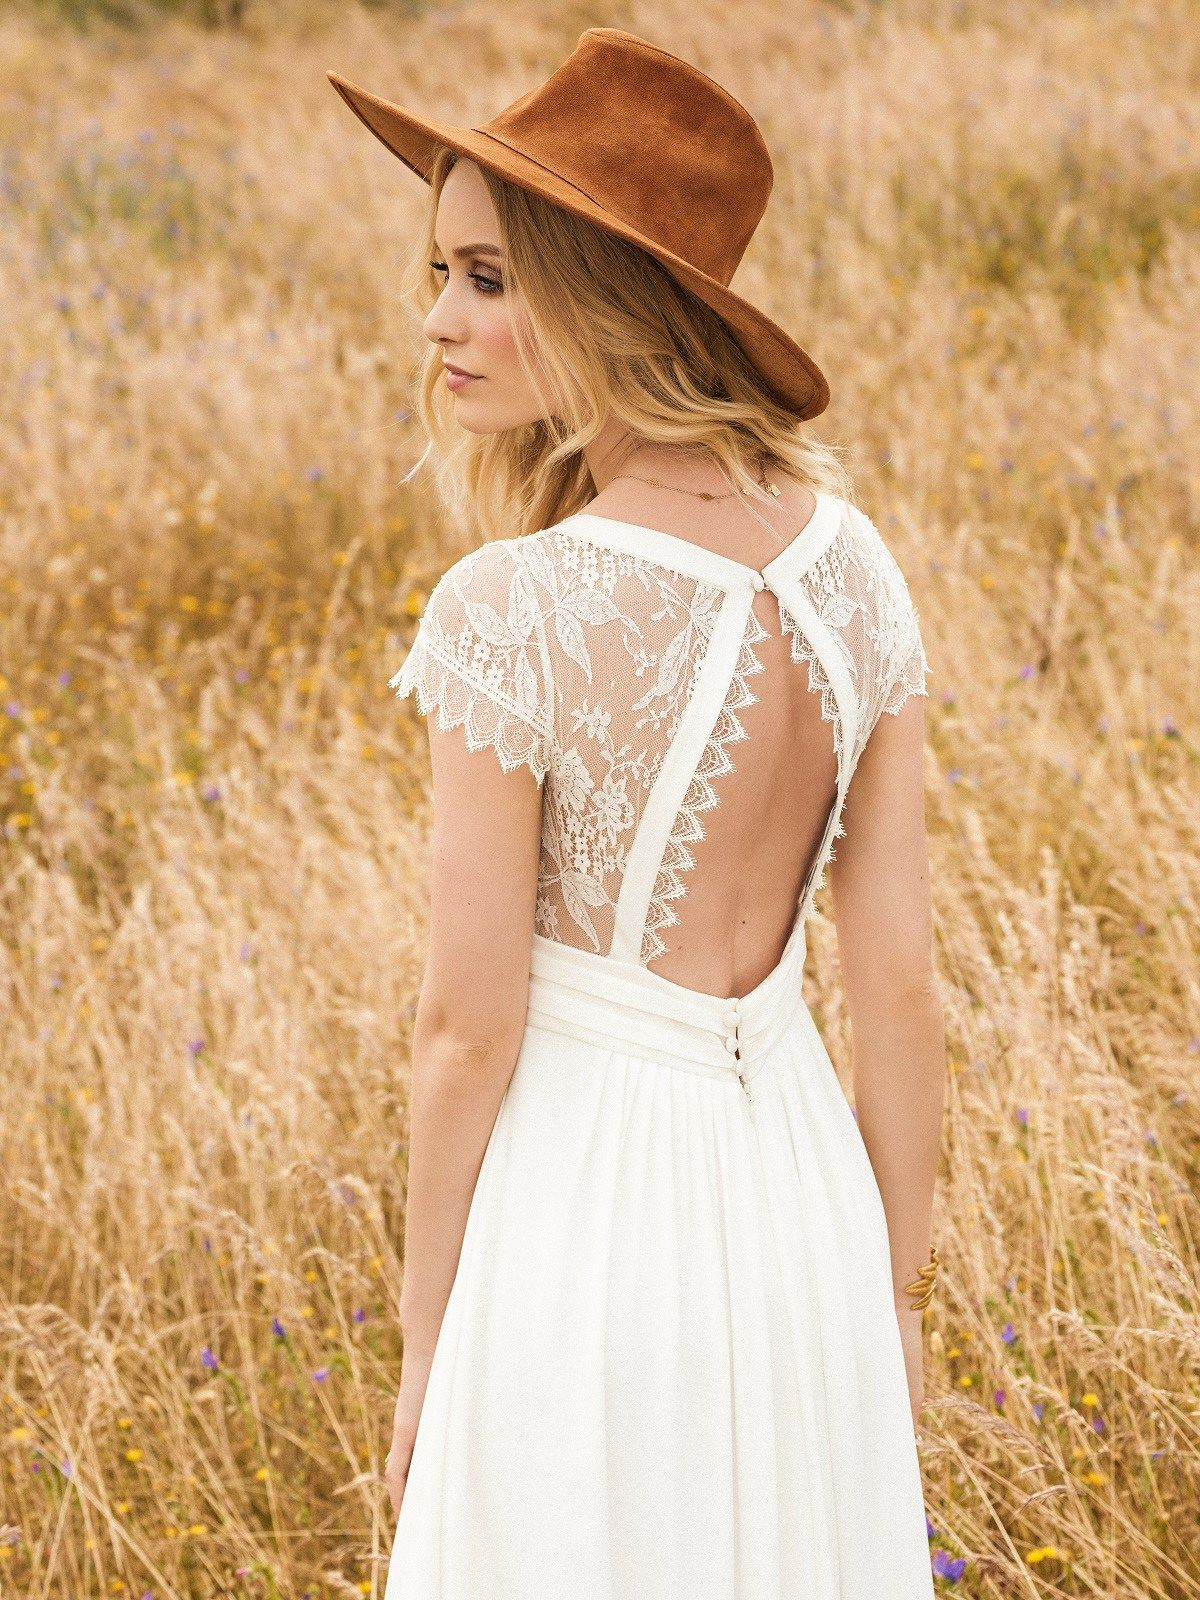 Rembo Styling Bohemian Chic Bridal Style in the New 2017